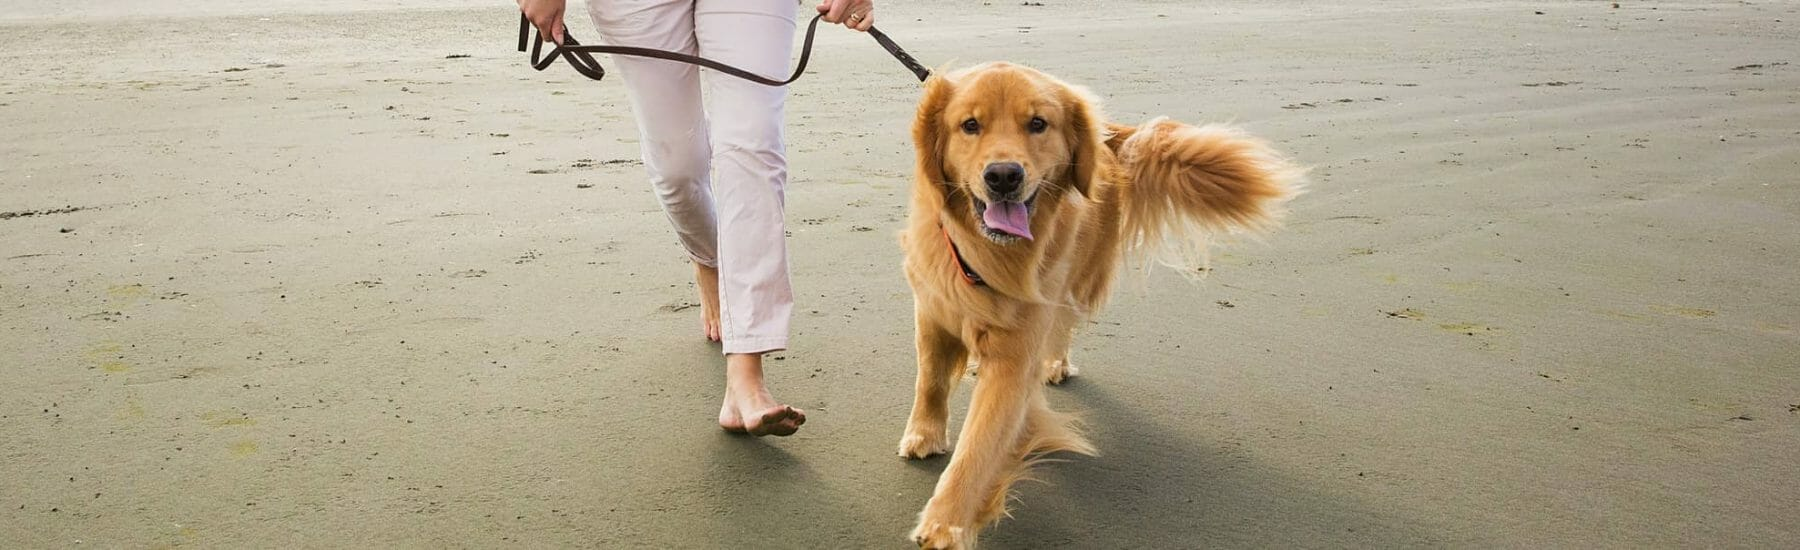 Golden Retriever and Owner walking on a beach